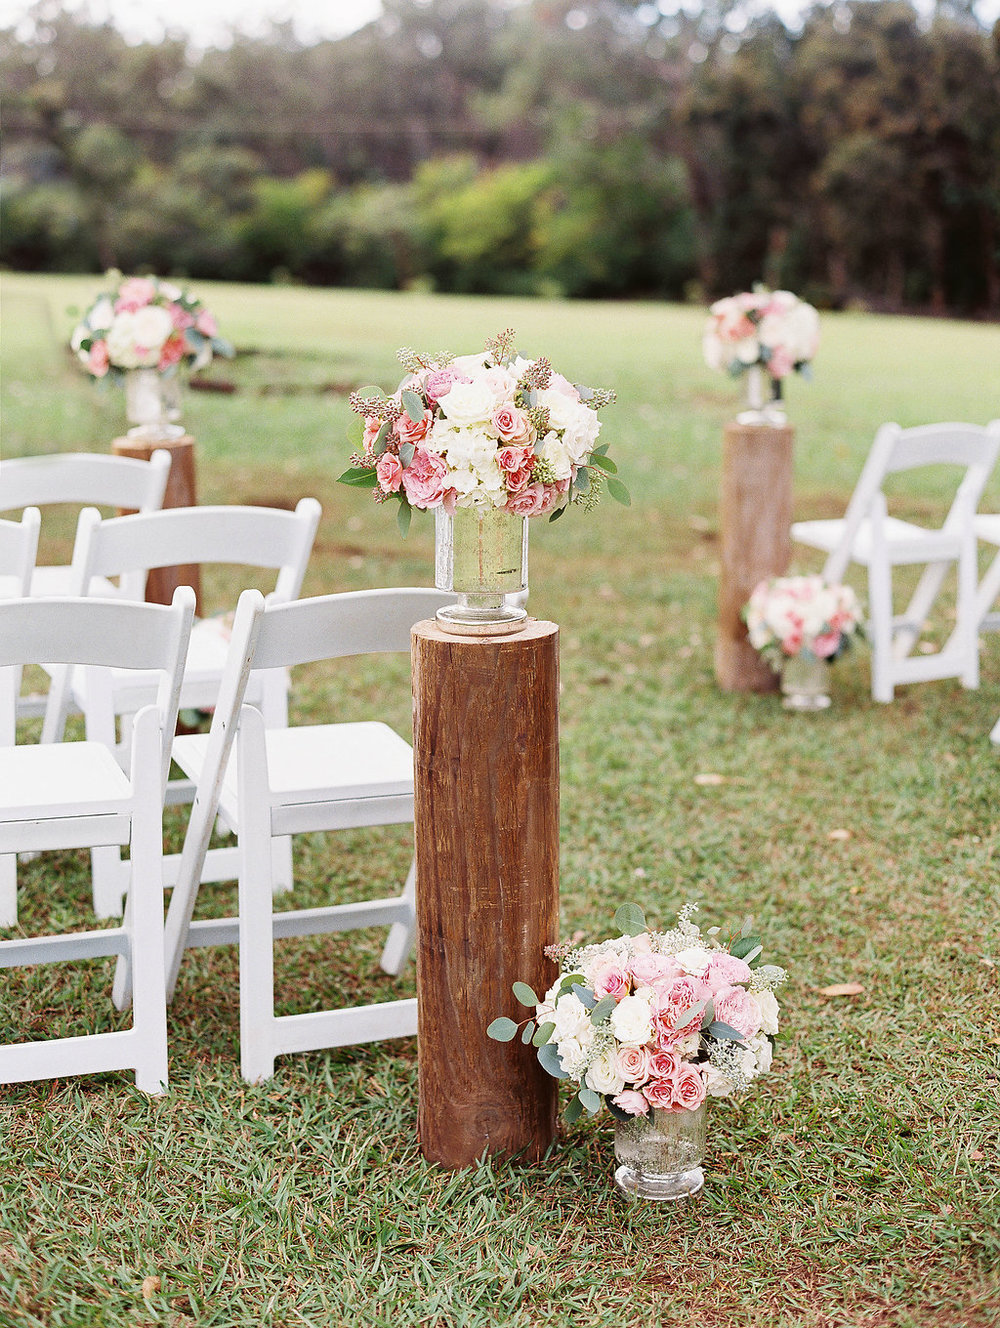 Peach Rustic Ceremony florals by Passion Roots | Ashley Goodwin Photography | Oahu, Hawaii